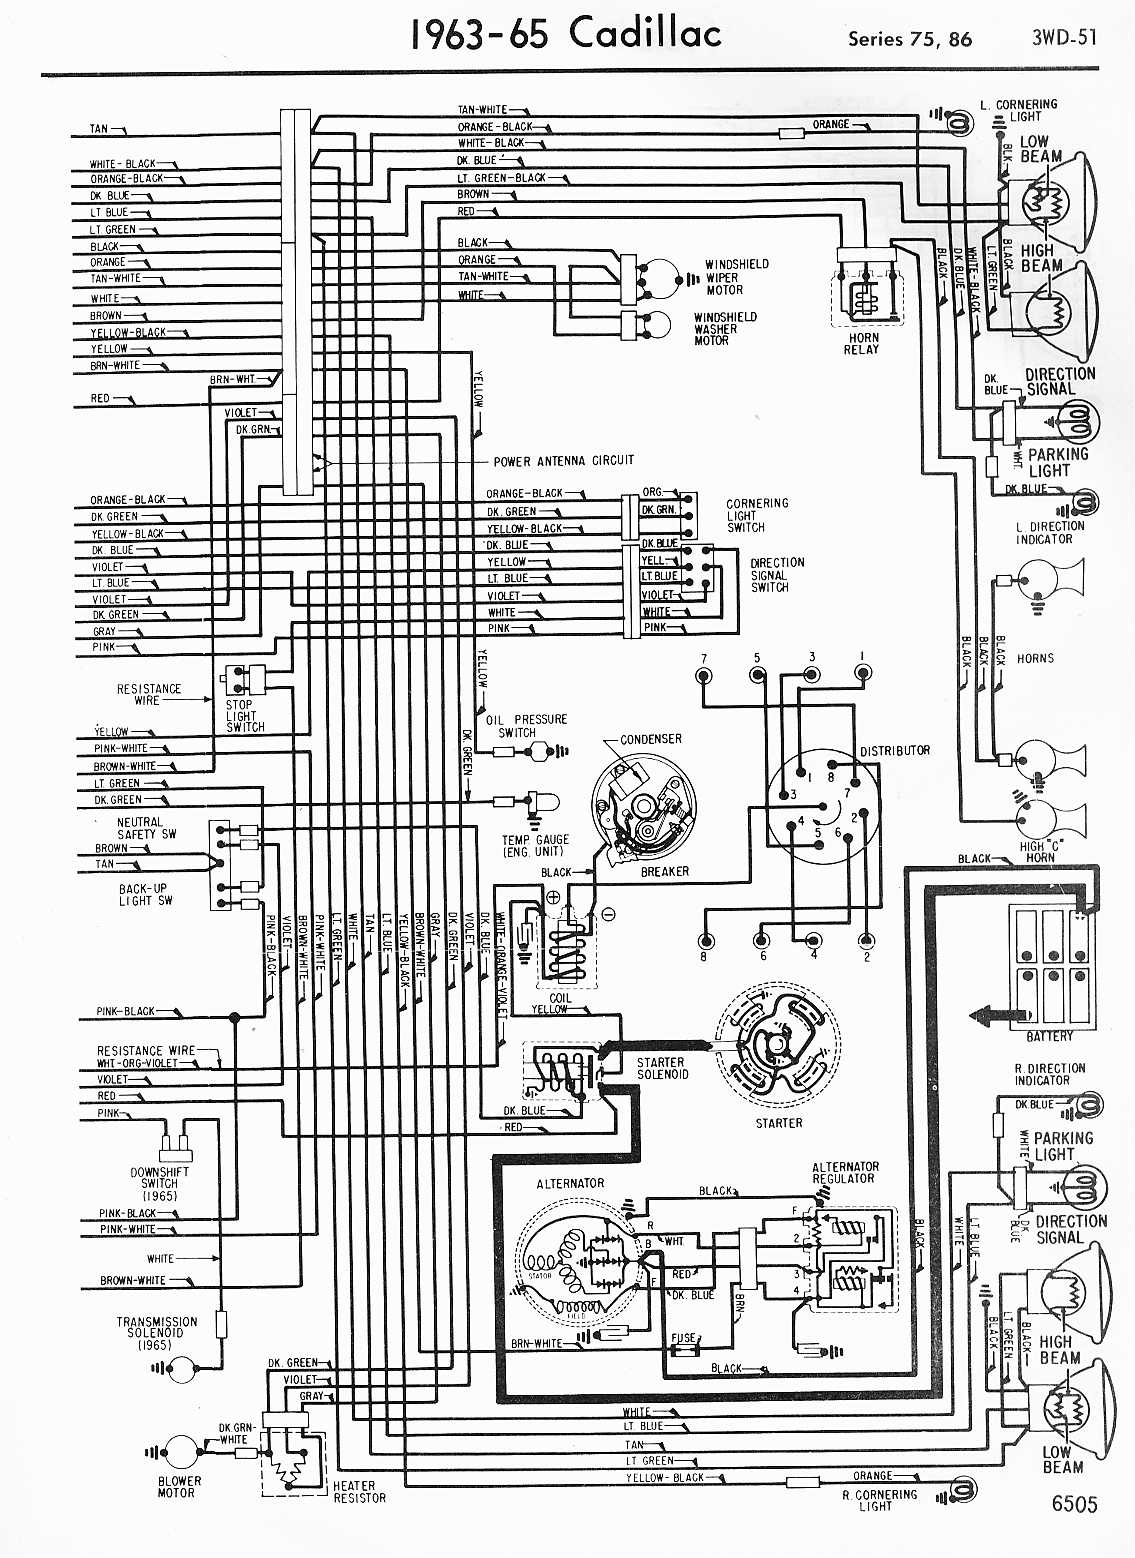 [SCHEMATICS_48ZD]  15871E9 1966 Cadillac Alternator Wiring Diagram | Wiring Library | 1966 Cadillac Wiring Diagram |  | Wiring Library